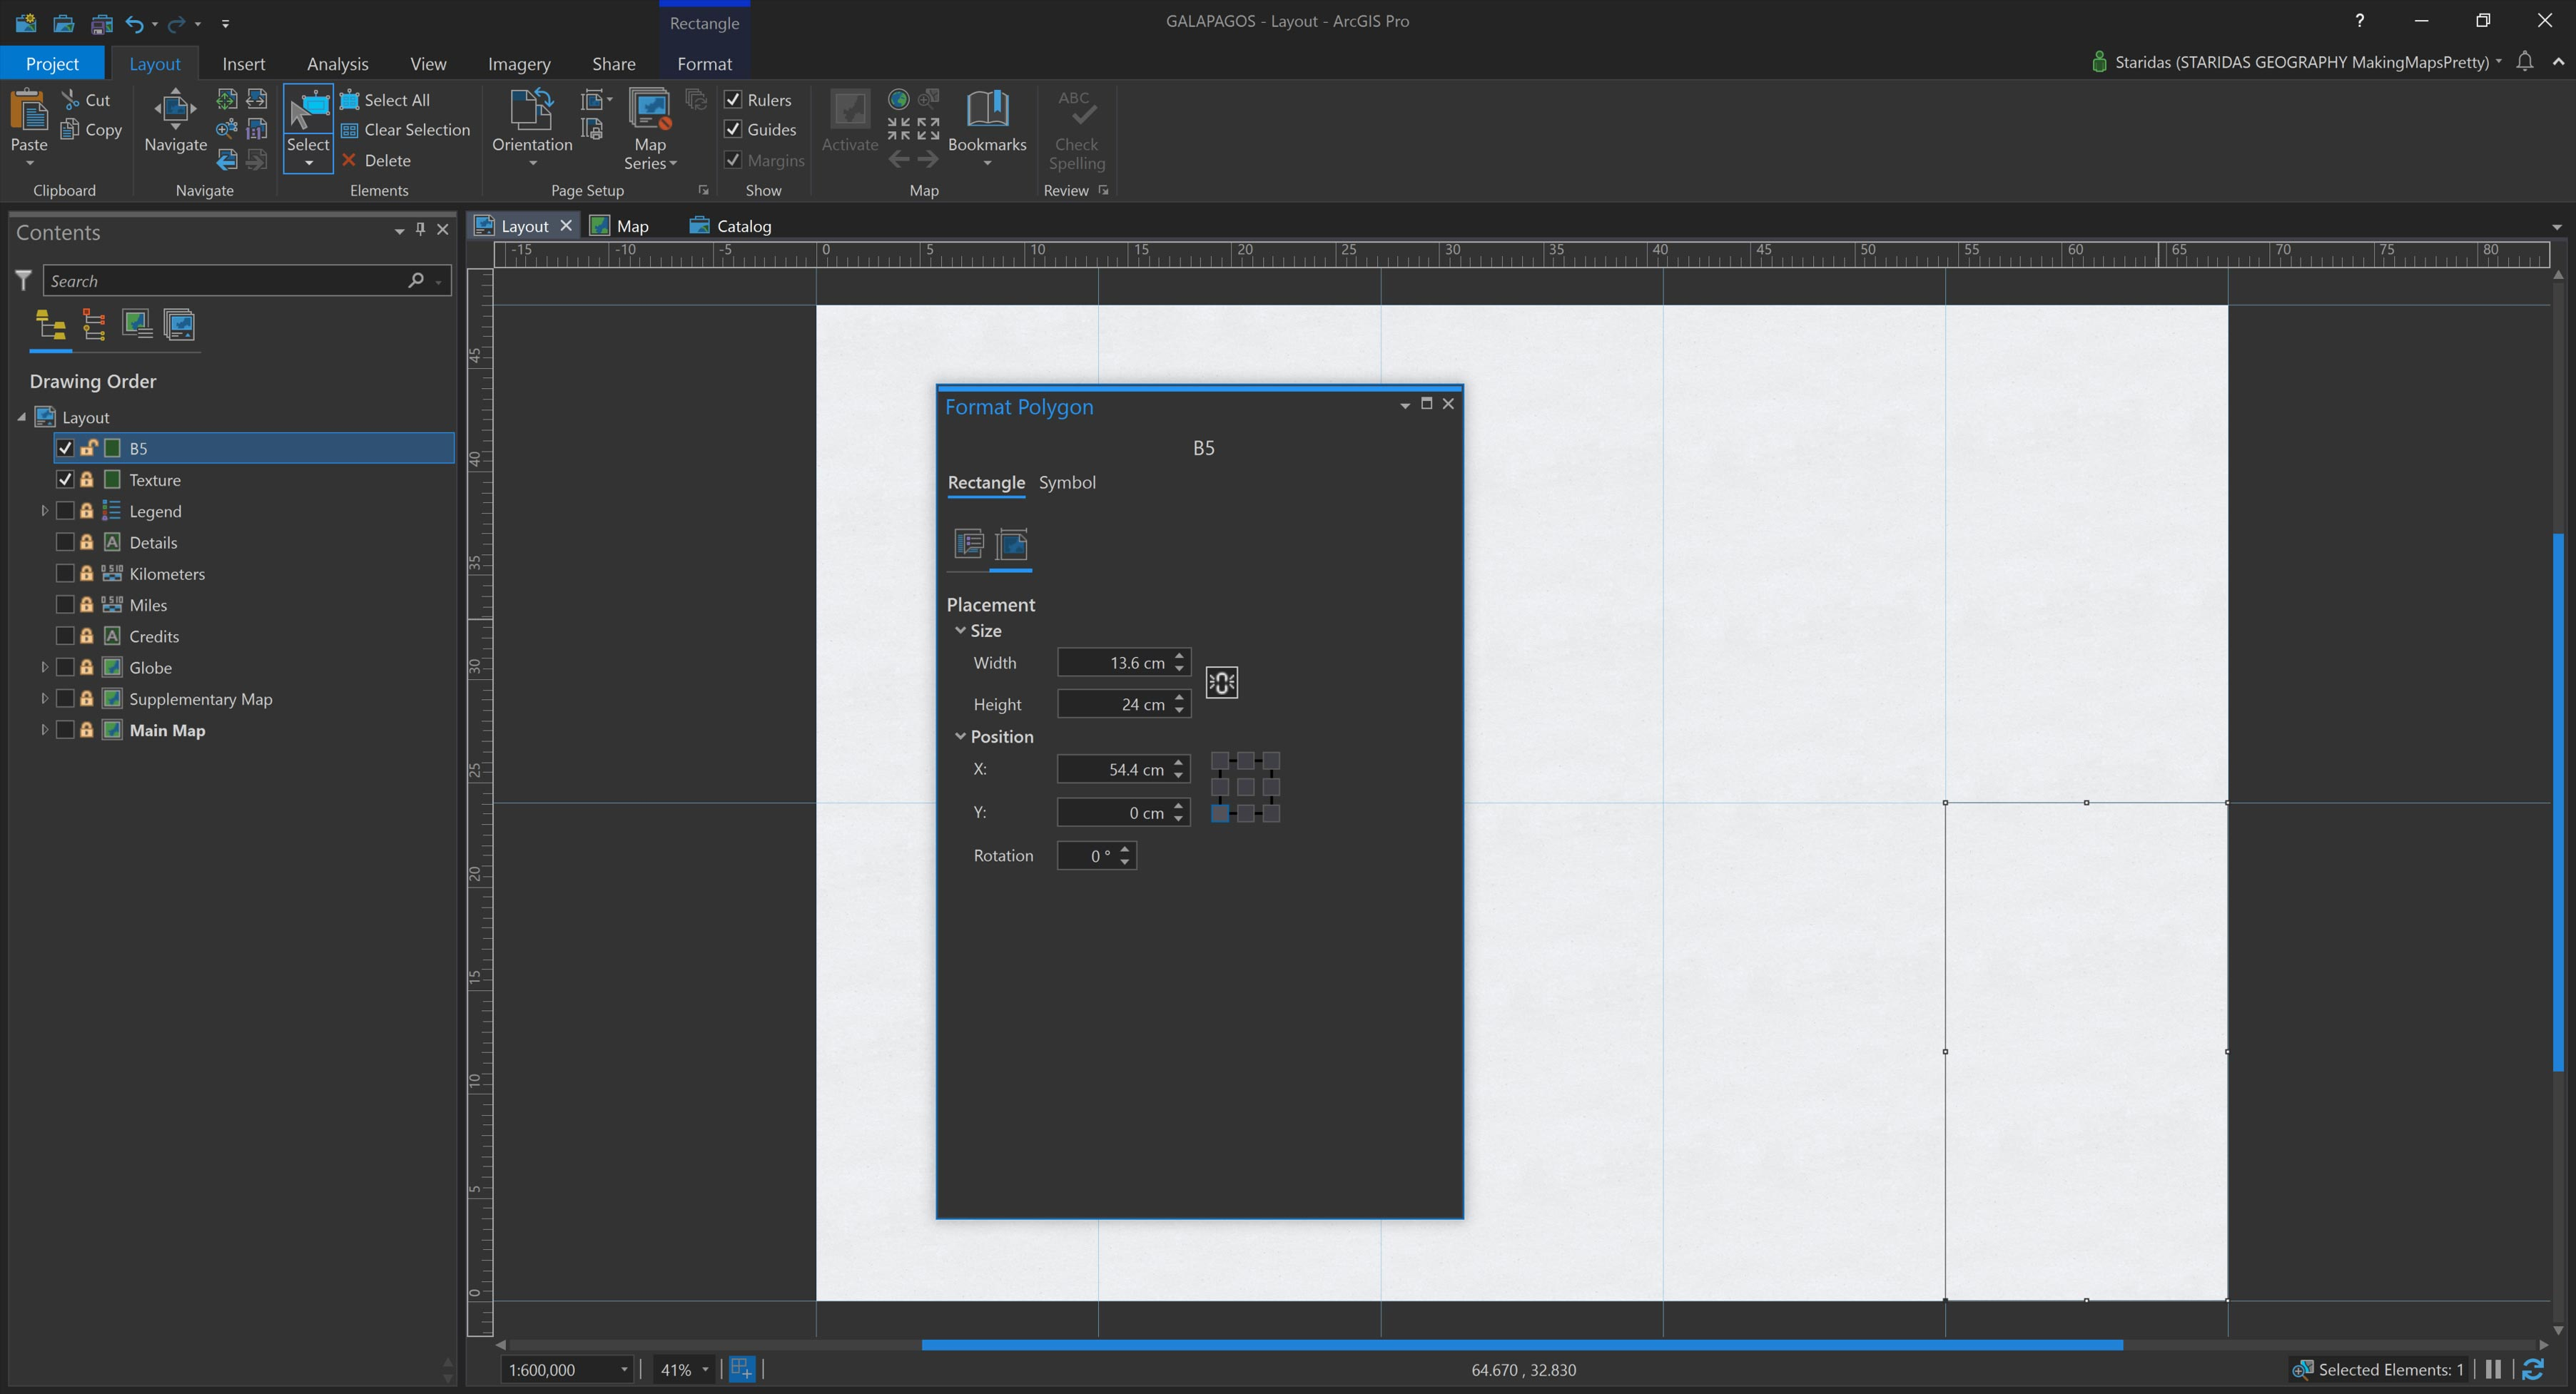 Picture 3: Creating graphic rectangles in the Layout view to simulate the folds.